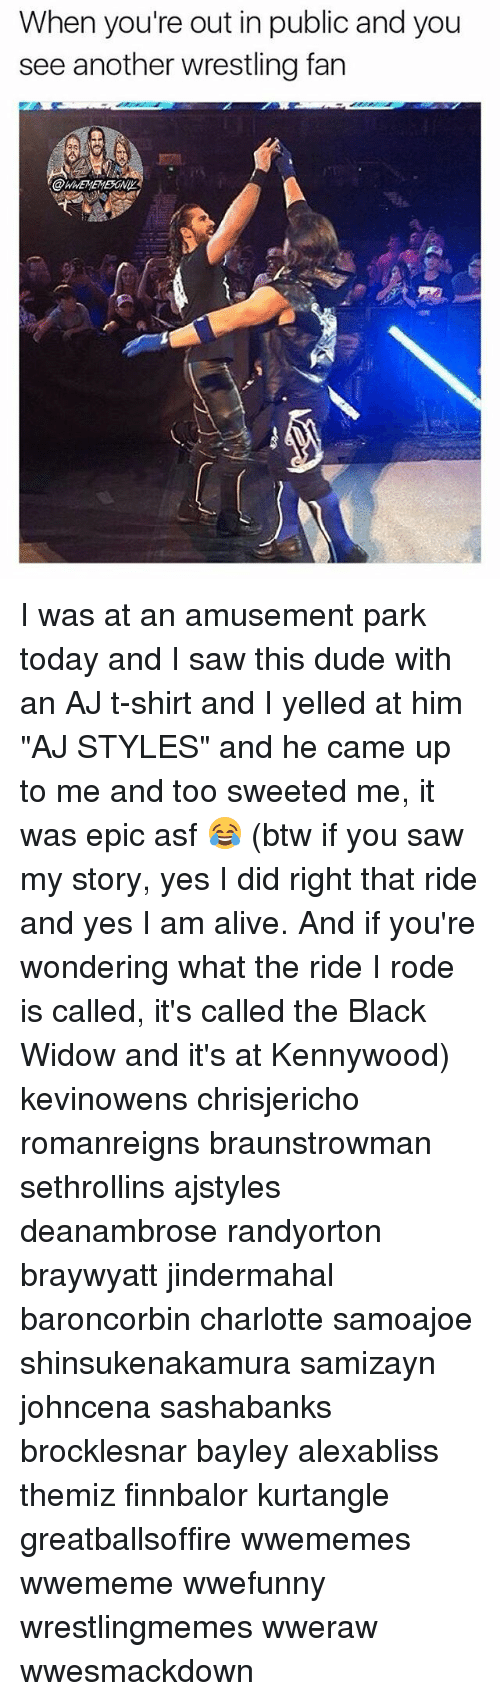 """Alive, Dude, and Memes: When you're out in public and you  see another wrestling fan I was at an amusement park today and I saw this dude with an AJ t-shirt and I yelled at him """"AJ STYLES"""" and he came up to me and too sweeted me, it was epic asf 😂 (btw if you saw my story, yes I did right that ride and yes I am alive. And if you're wondering what the ride I rode is called, it's called the Black Widow and it's at Kennywood) kevinowens chrisjericho romanreigns braunstrowman sethrollins ajstyles deanambrose randyorton braywyatt jindermahal baroncorbin charlotte samoajoe shinsukenakamura samizayn johncena sashabanks brocklesnar bayley alexabliss themiz finnbalor kurtangle greatballsoffire wwememes wwememe wwefunny wrestlingmemes wweraw wwesmackdown"""